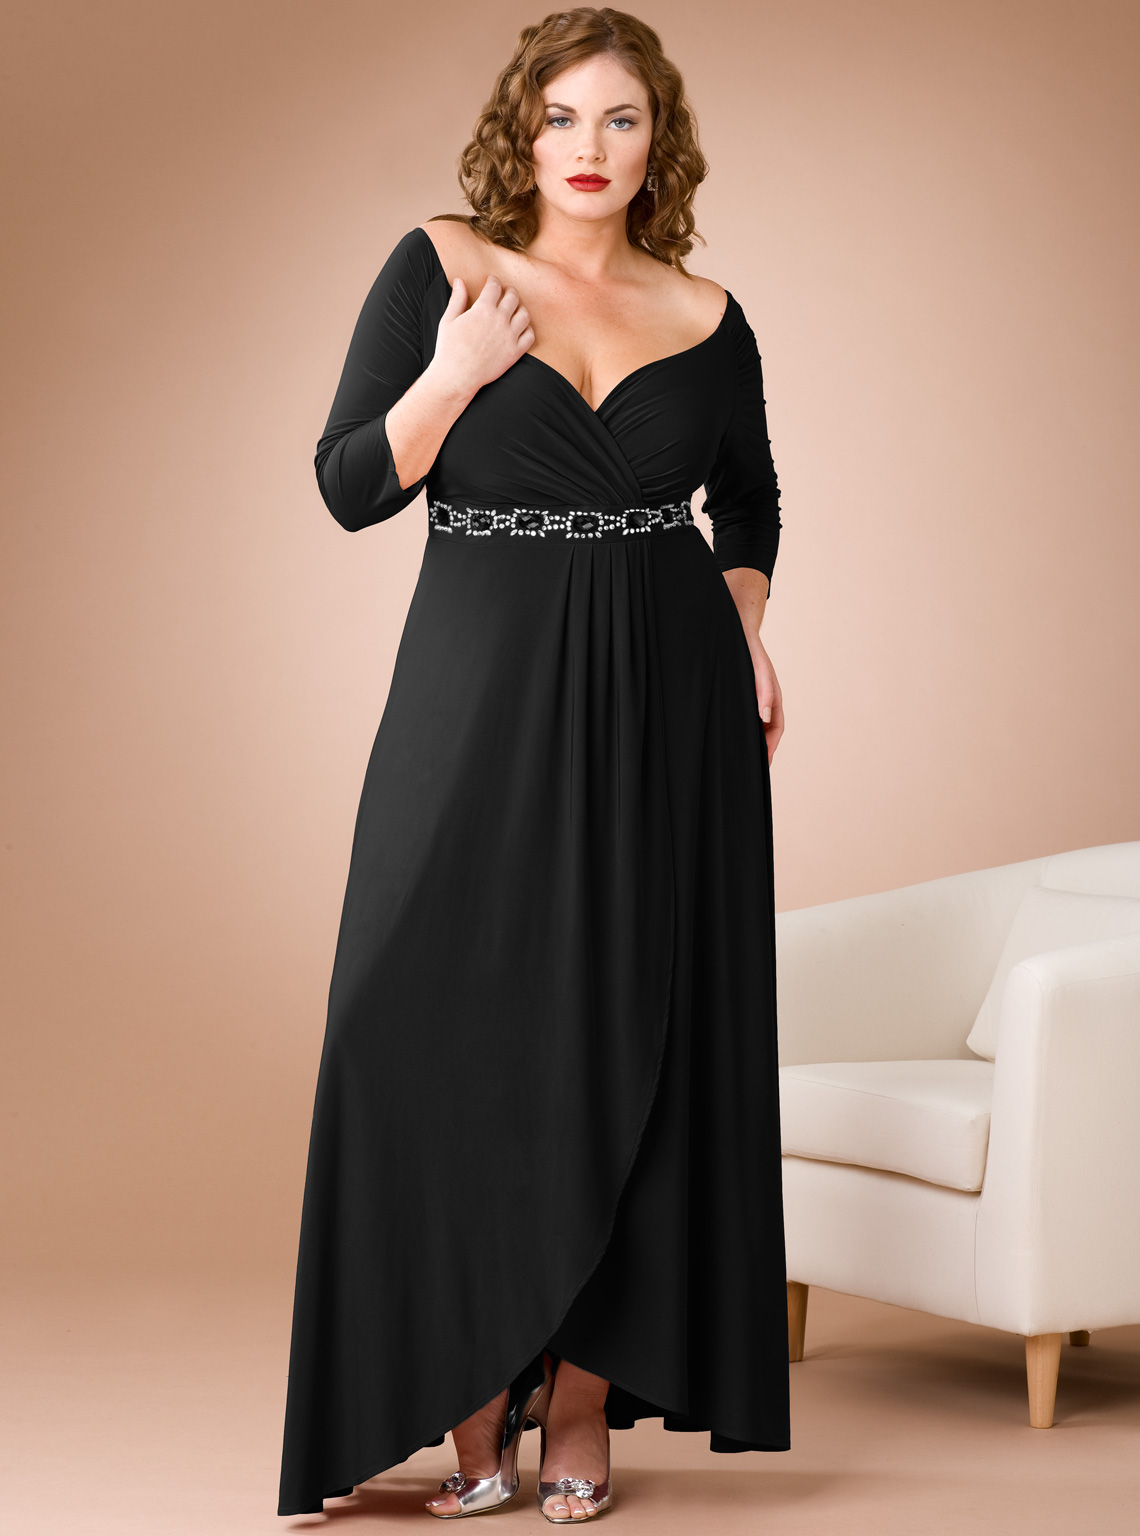 Plus Size Formal Dresses with Black Jacket